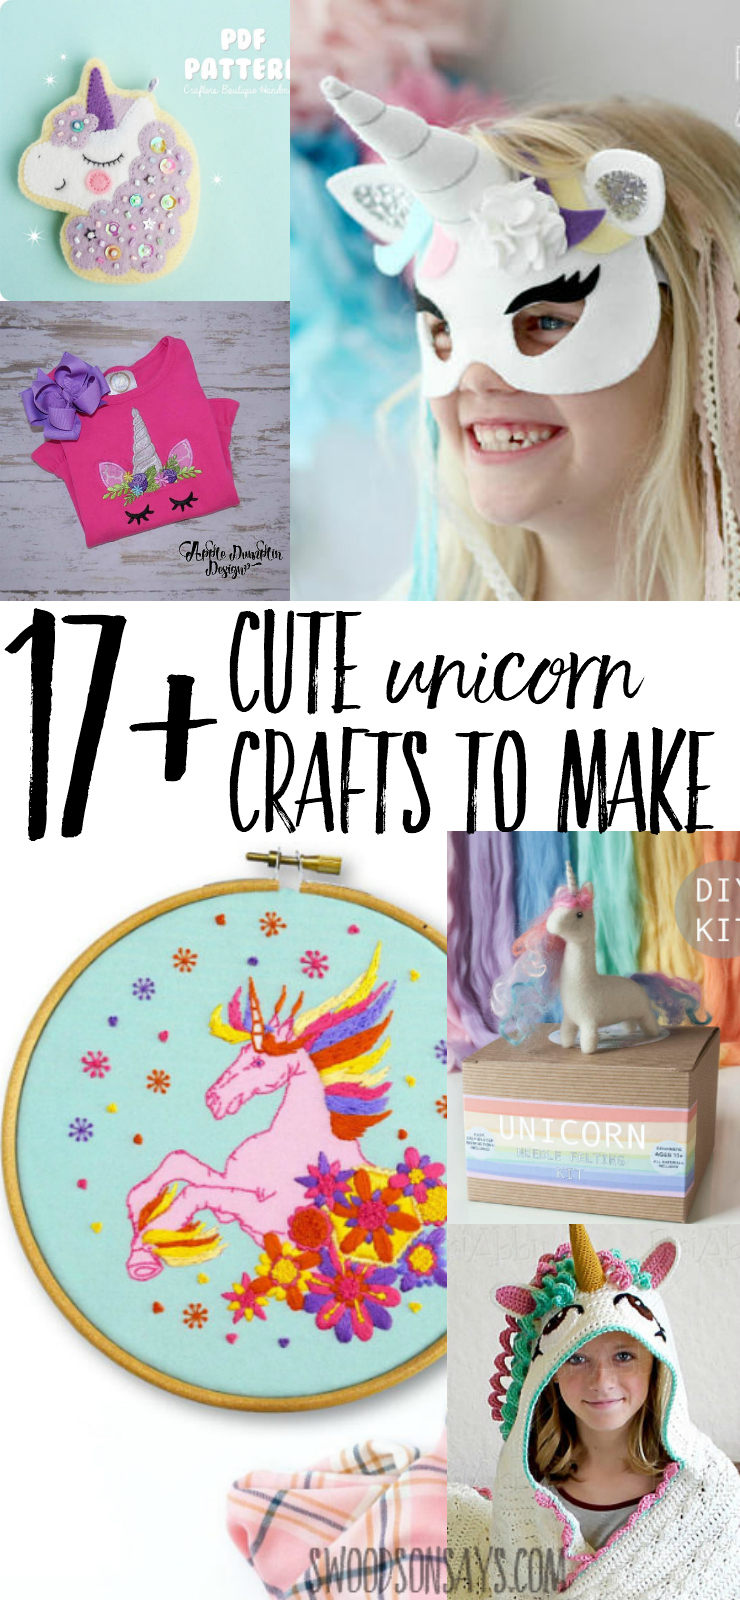 Check out these adorable unicorn craft patterns! Unicorn embroidery, unicorn sewing, unicorn crochet, unicorn applique, unicorns for every crafter and every kid! #unicorncraft #crafts #unicorn